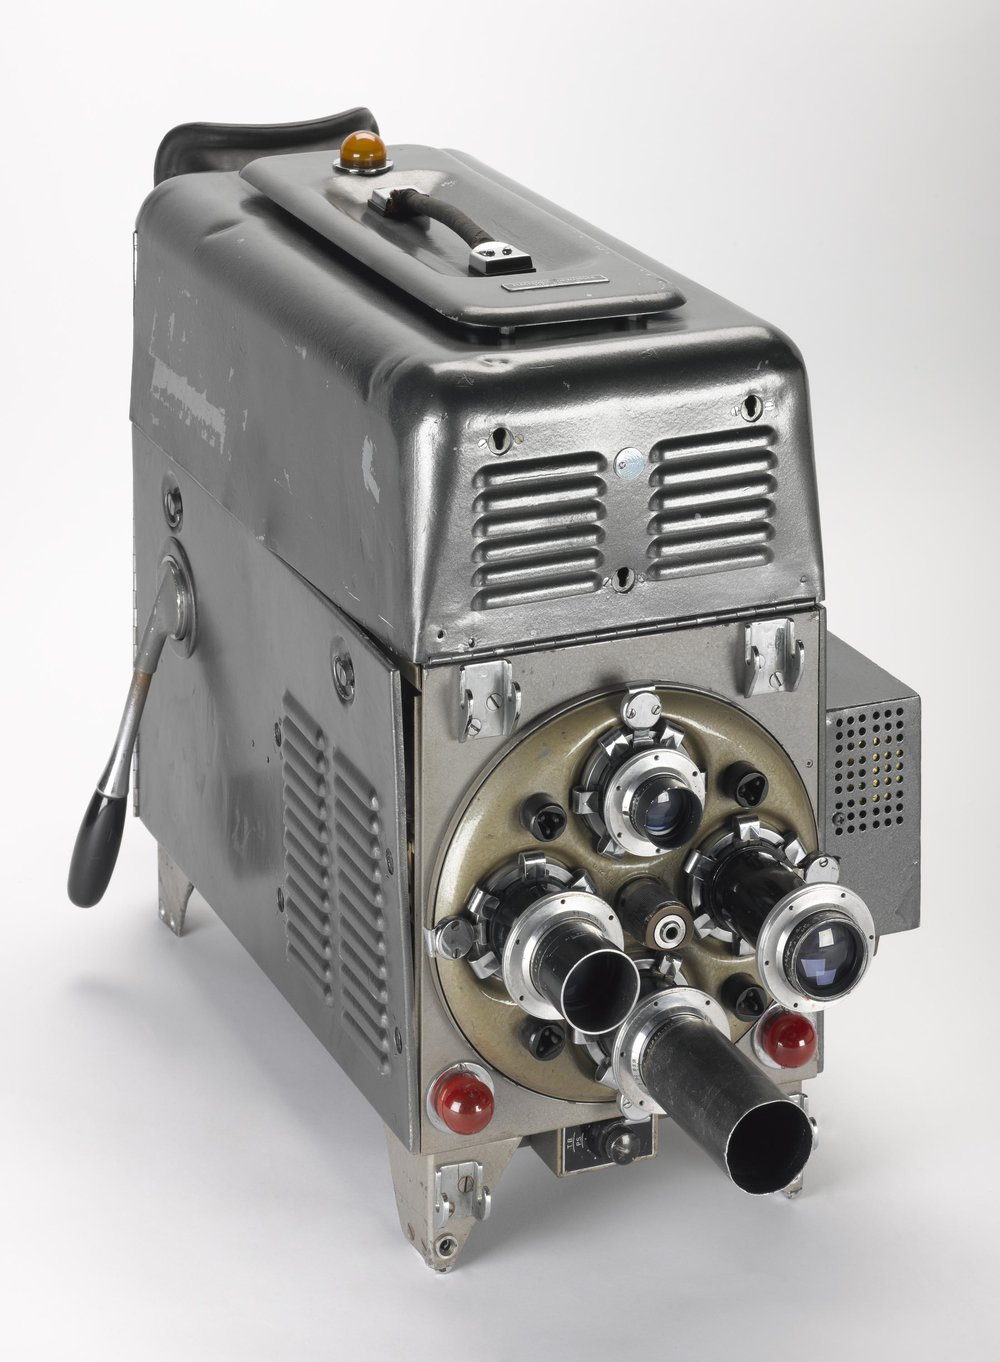 Marconi Mark II television camera head, made by Marconi's Wireless Telegraphy Company Limited (1951). More information